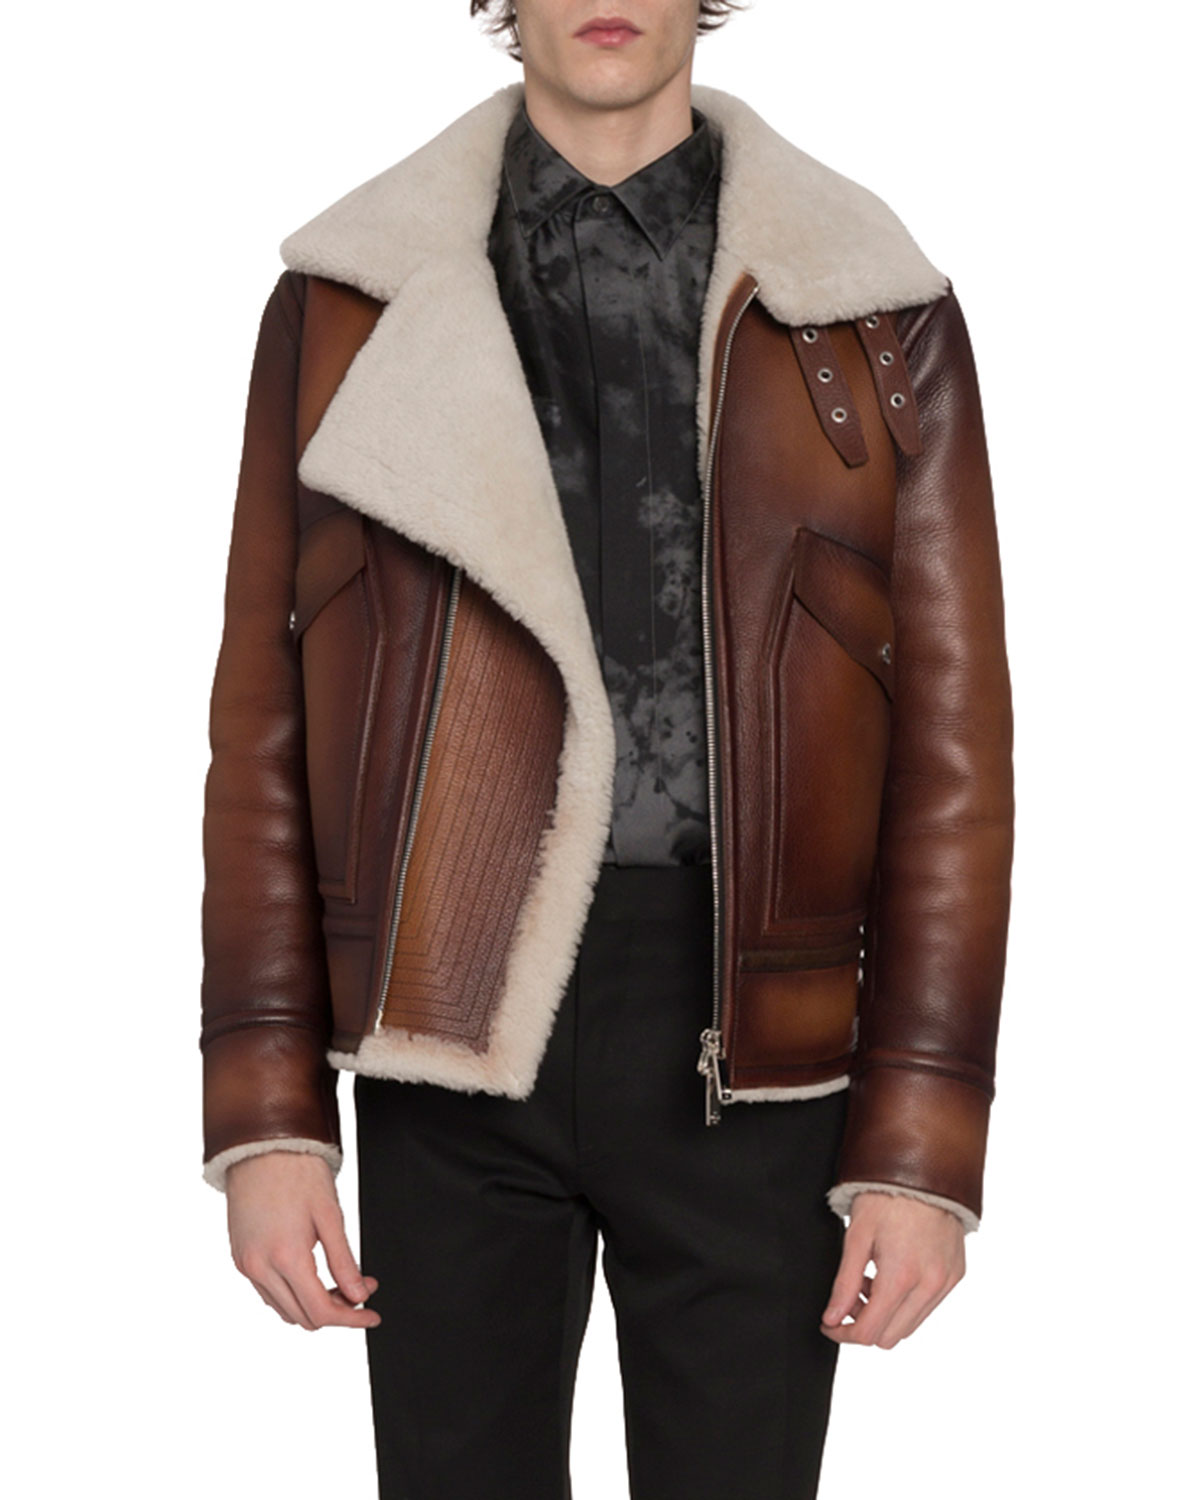 Berluti Jackets MEN'S LEATHER & SHEARLING JACKET WITH ASYMMETRICAL ZIP FRONT